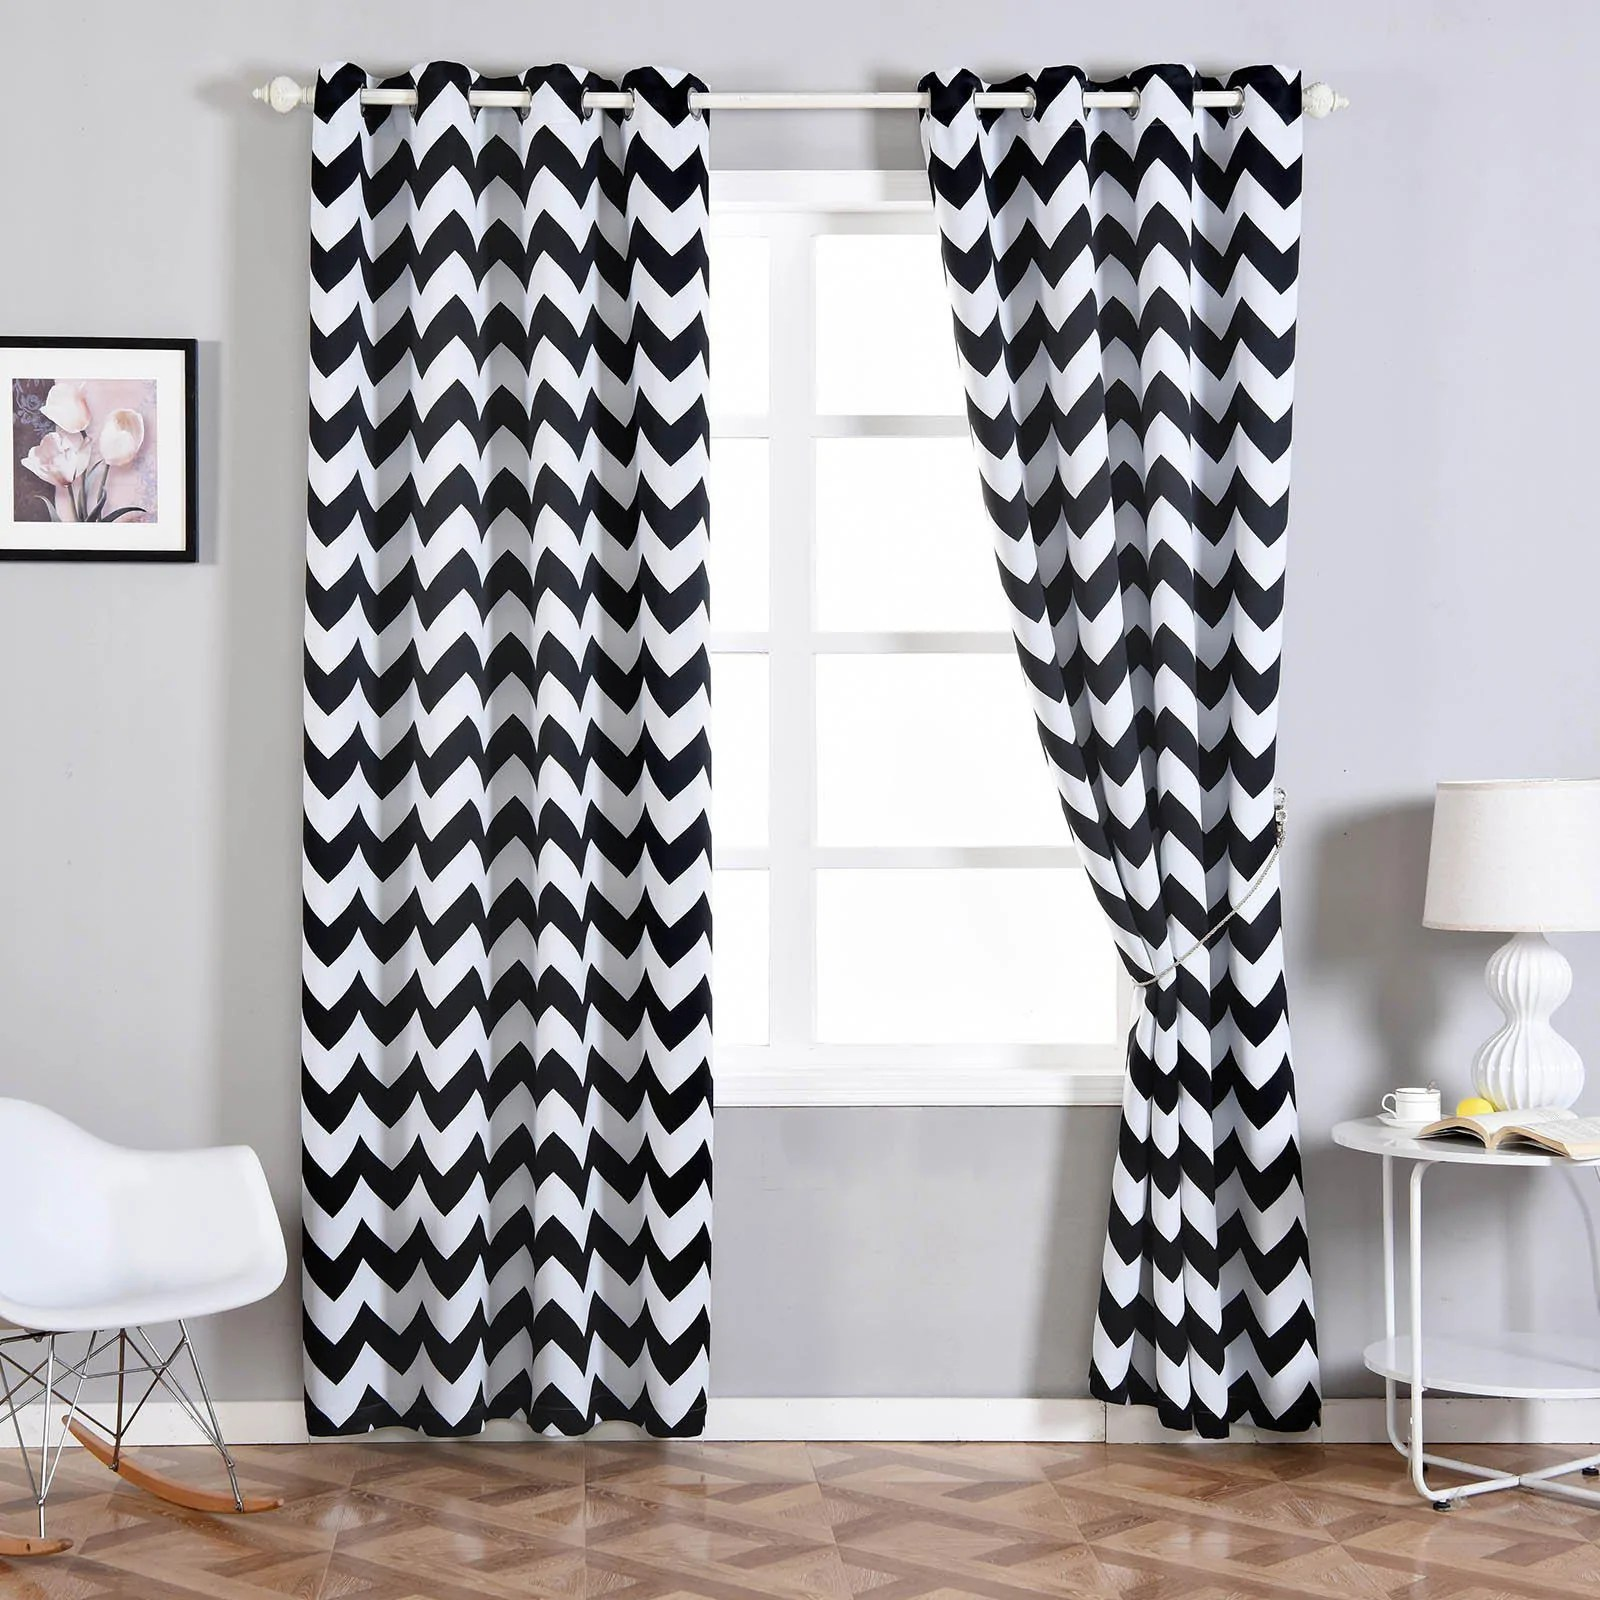 Black And White Chevron Blackout Curtains Chevron Blackout Curtains 2 Packs White Black Blackout Curtains 52 X 108 Inch Grommet Curtains Thermal Grommet Curtains